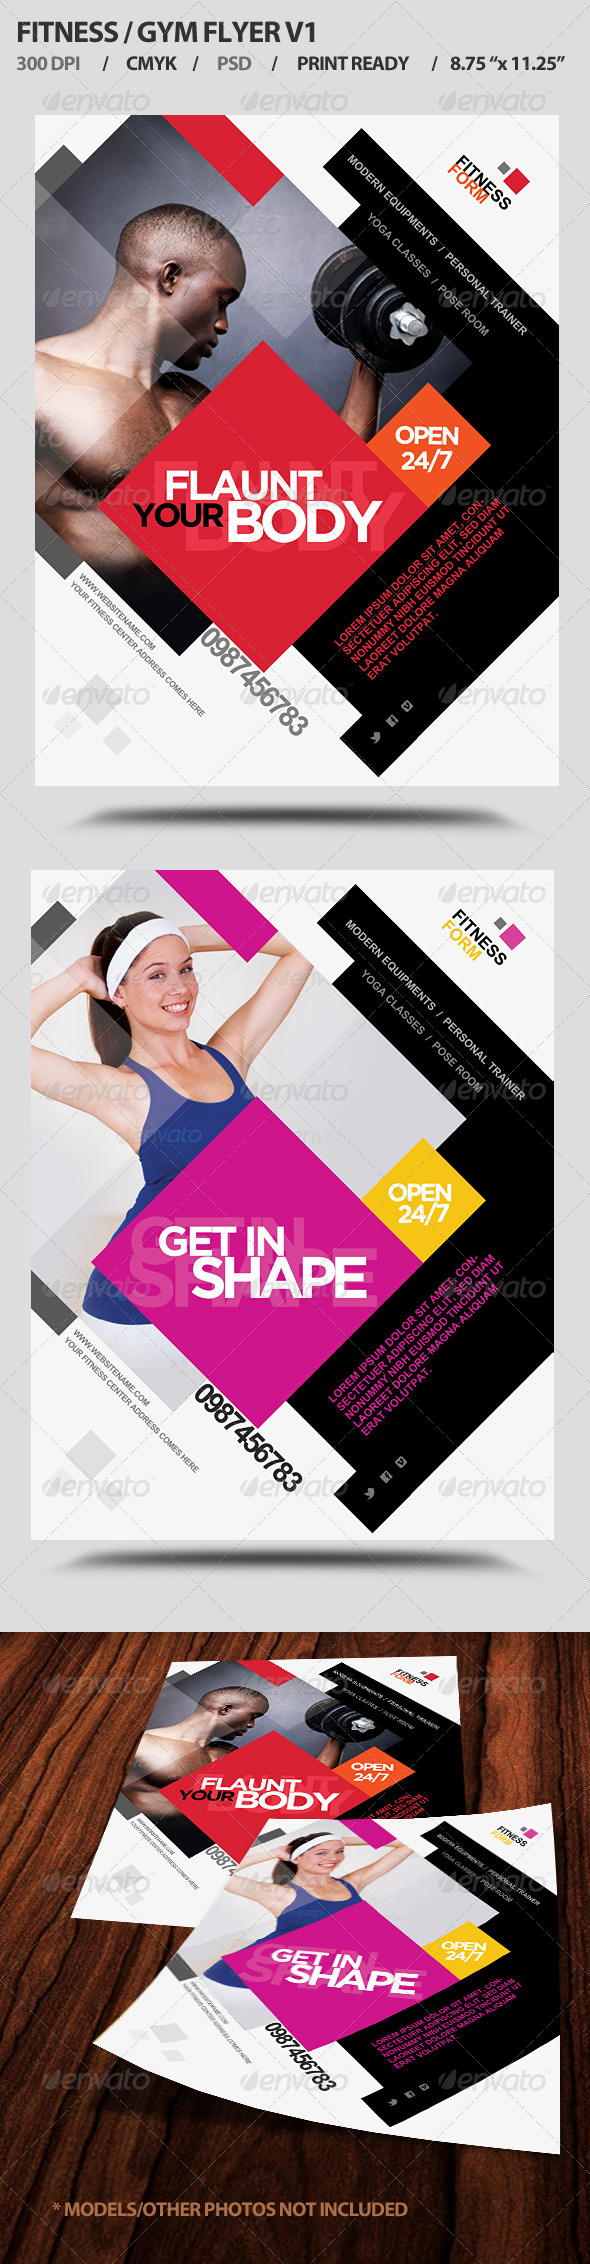 Fitness/Gym Business Promotion Flyer V1